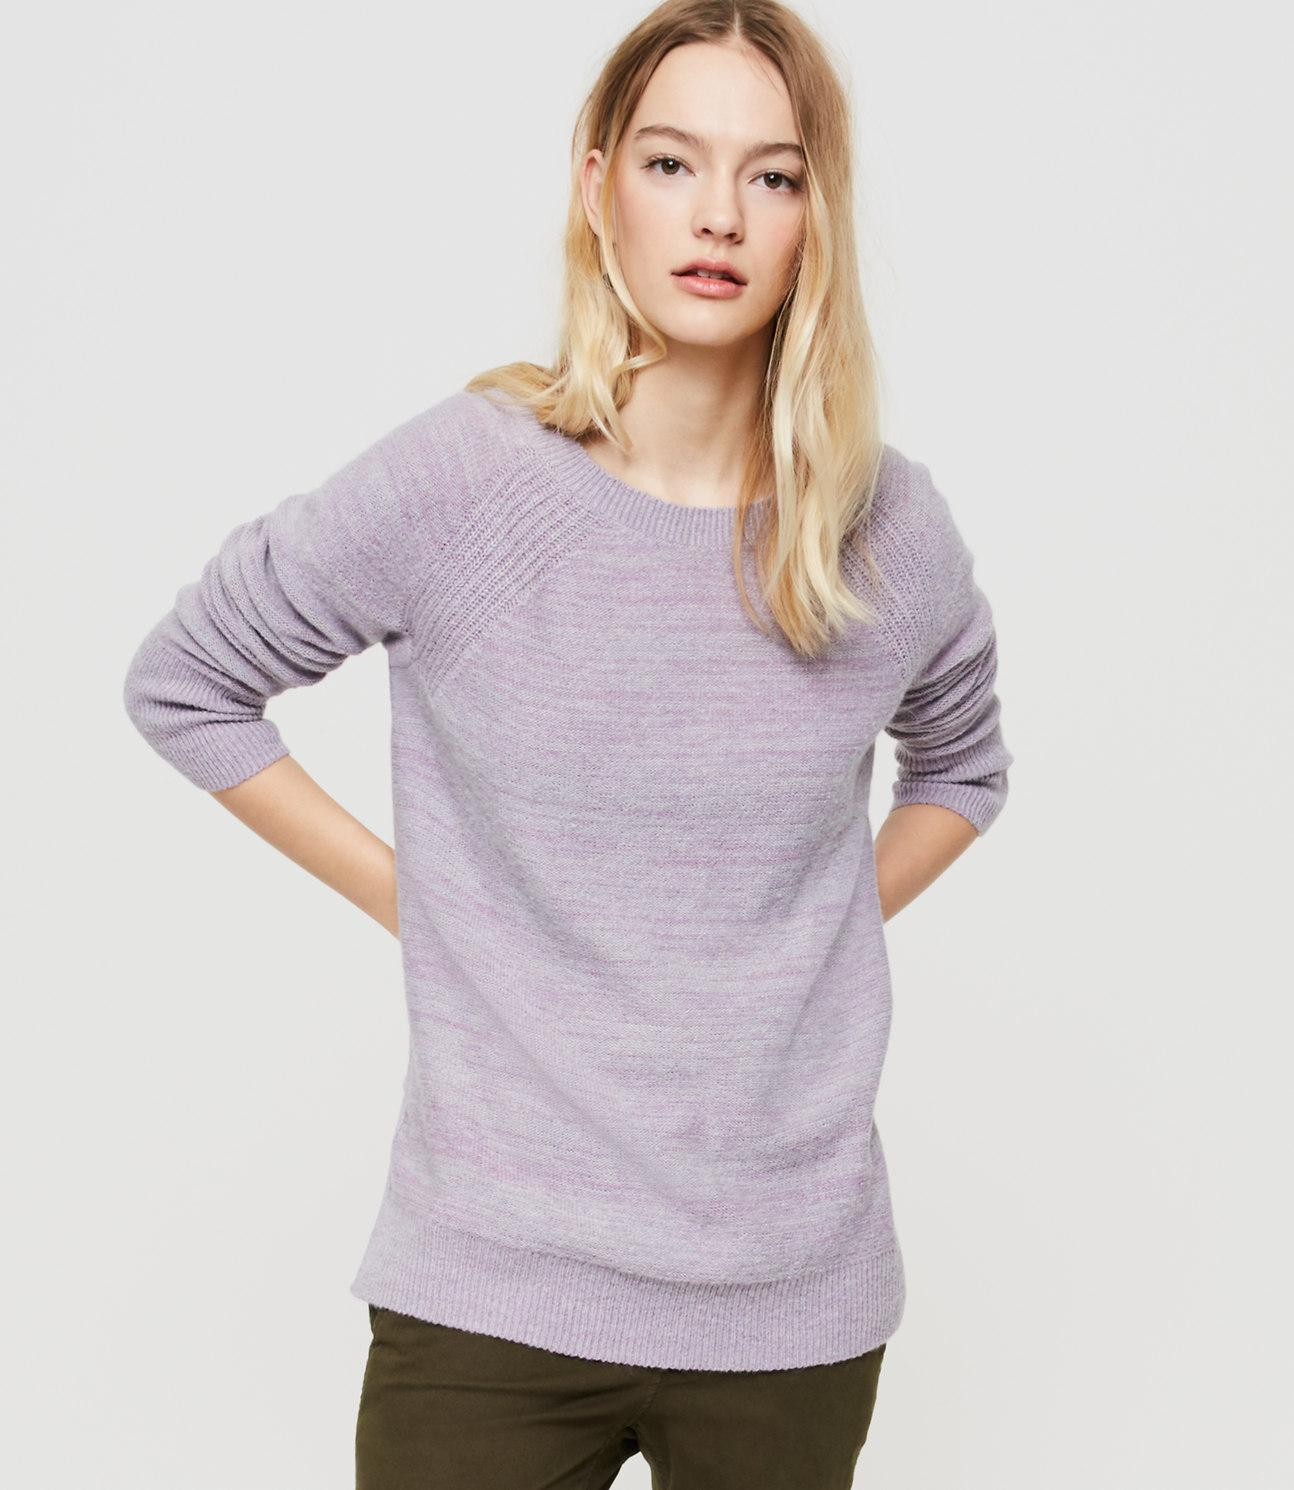 Lou & grey Slitside Sweater Tunic in Purple | Lyst